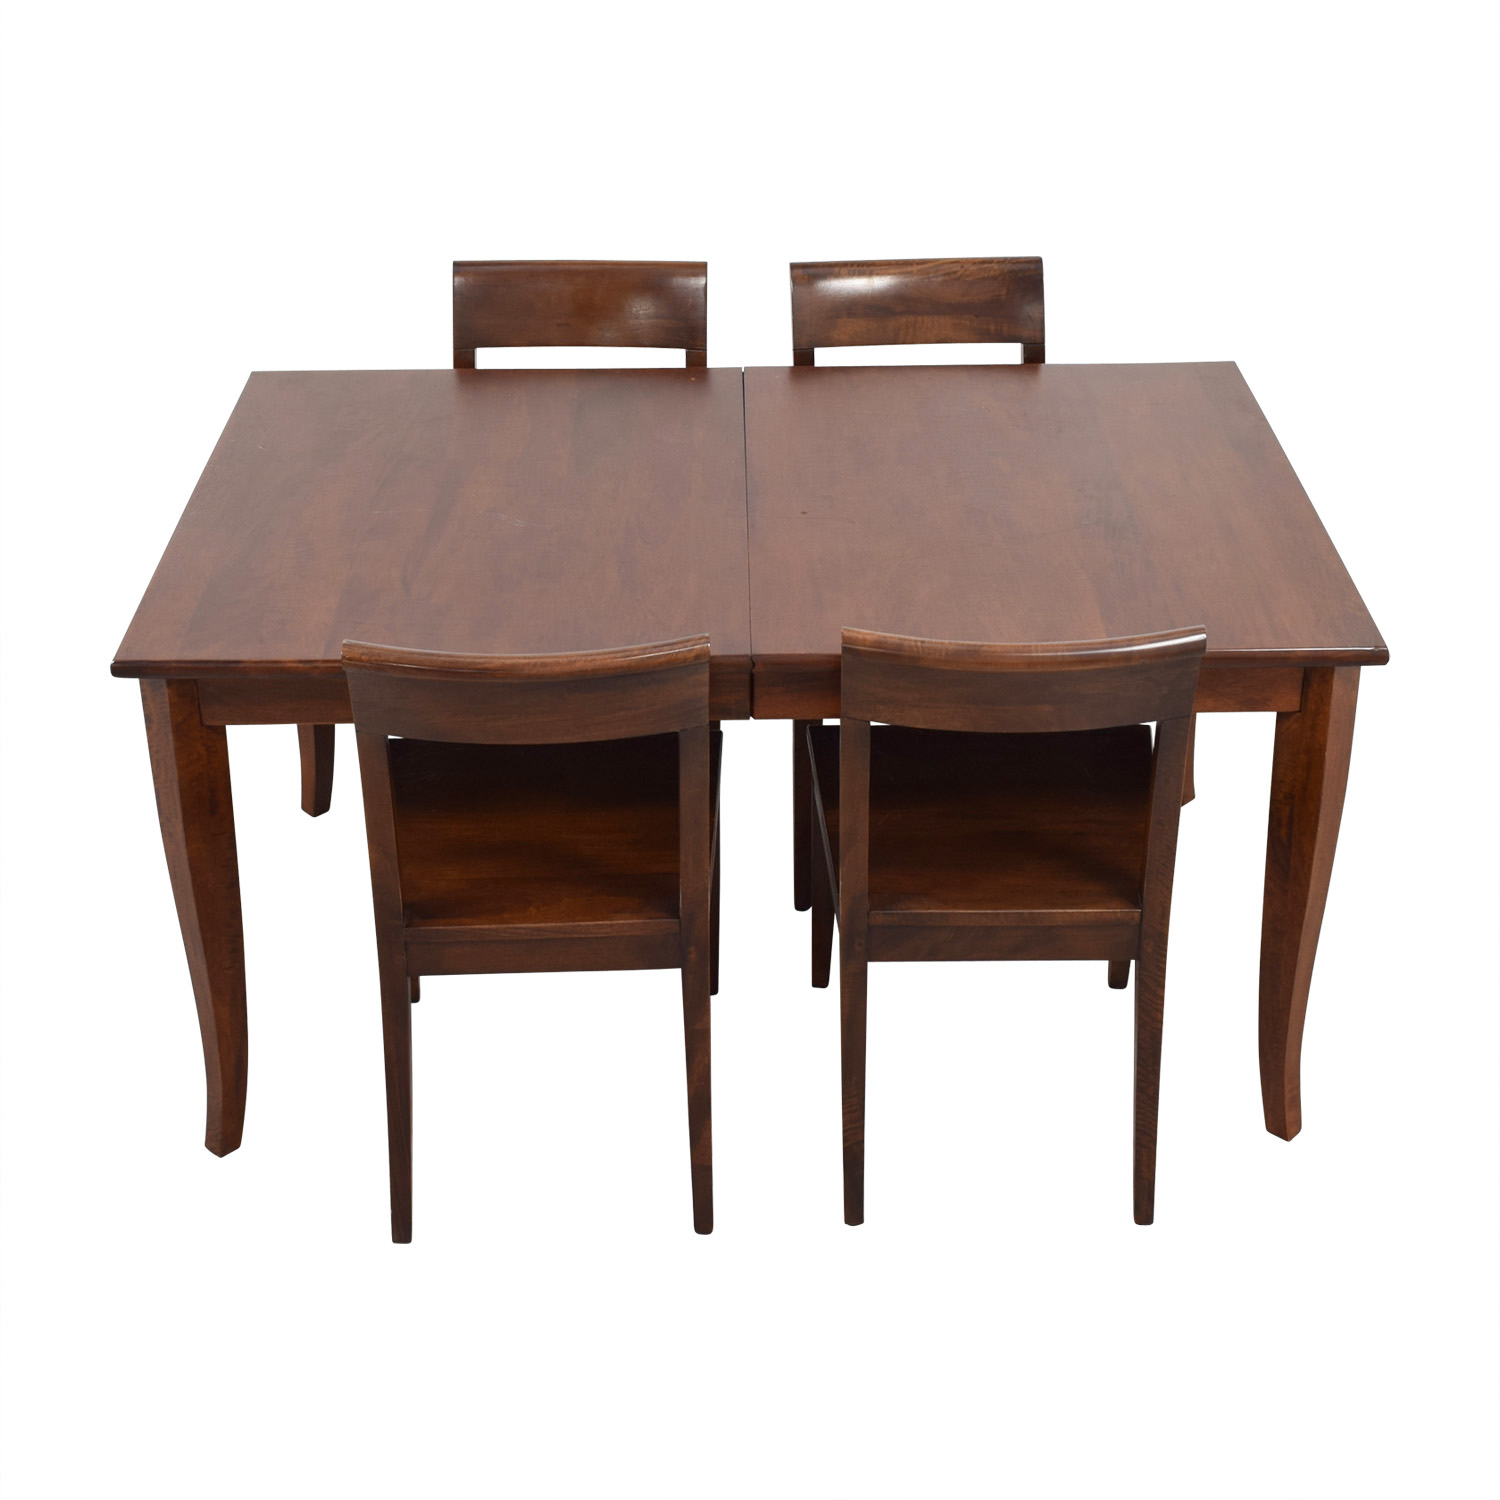 Crate & Barrel Crate & Barrel Cabria Extendable Dining Set for sale